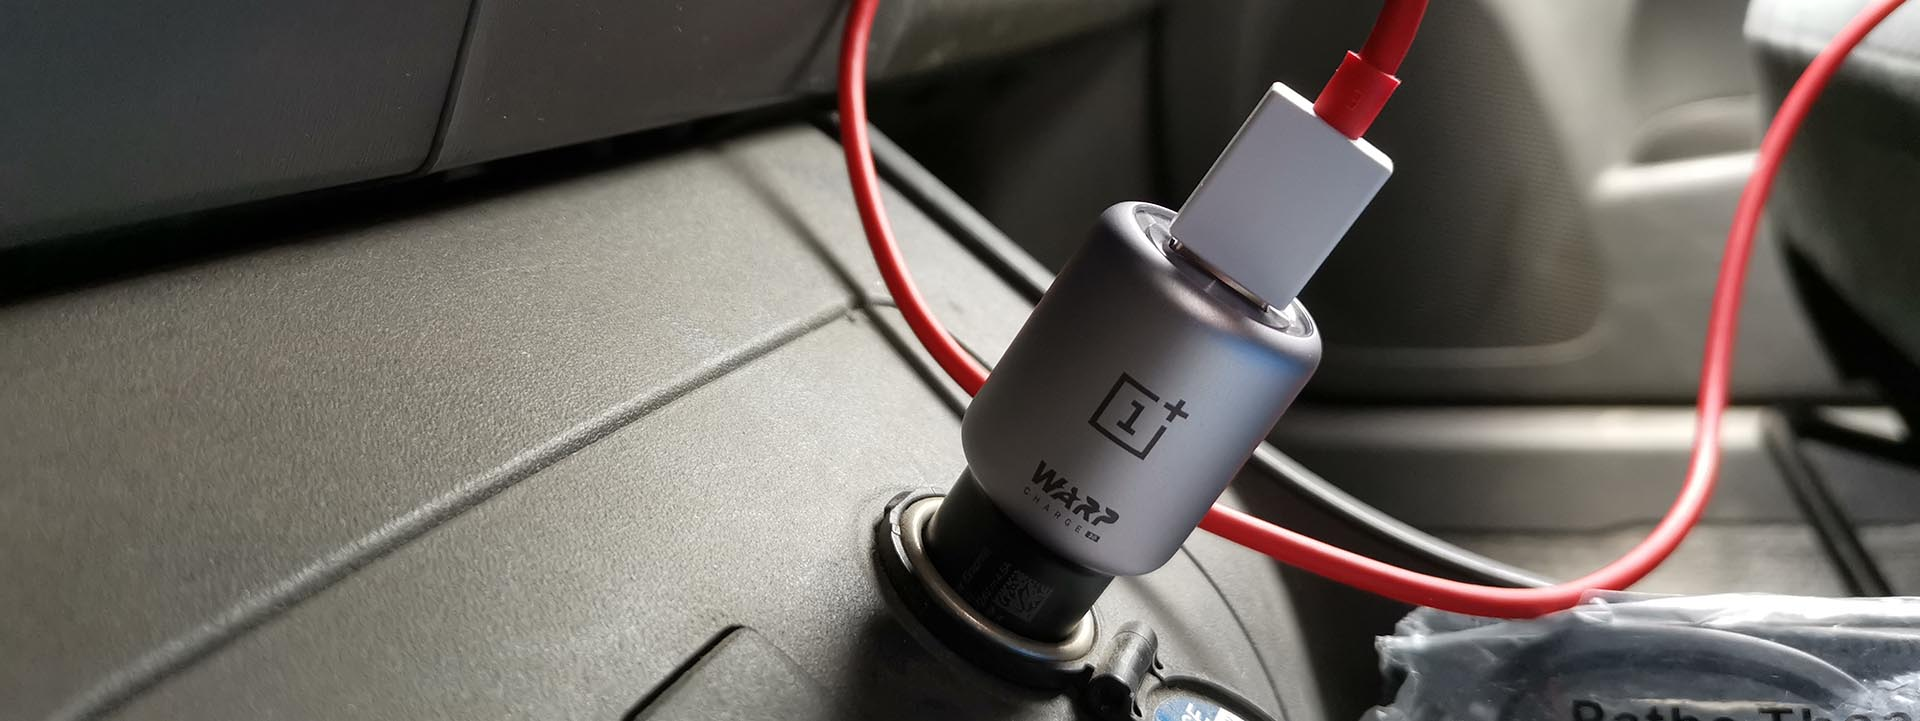 OnePlus Warp Charge 30 Car Charger in de auto